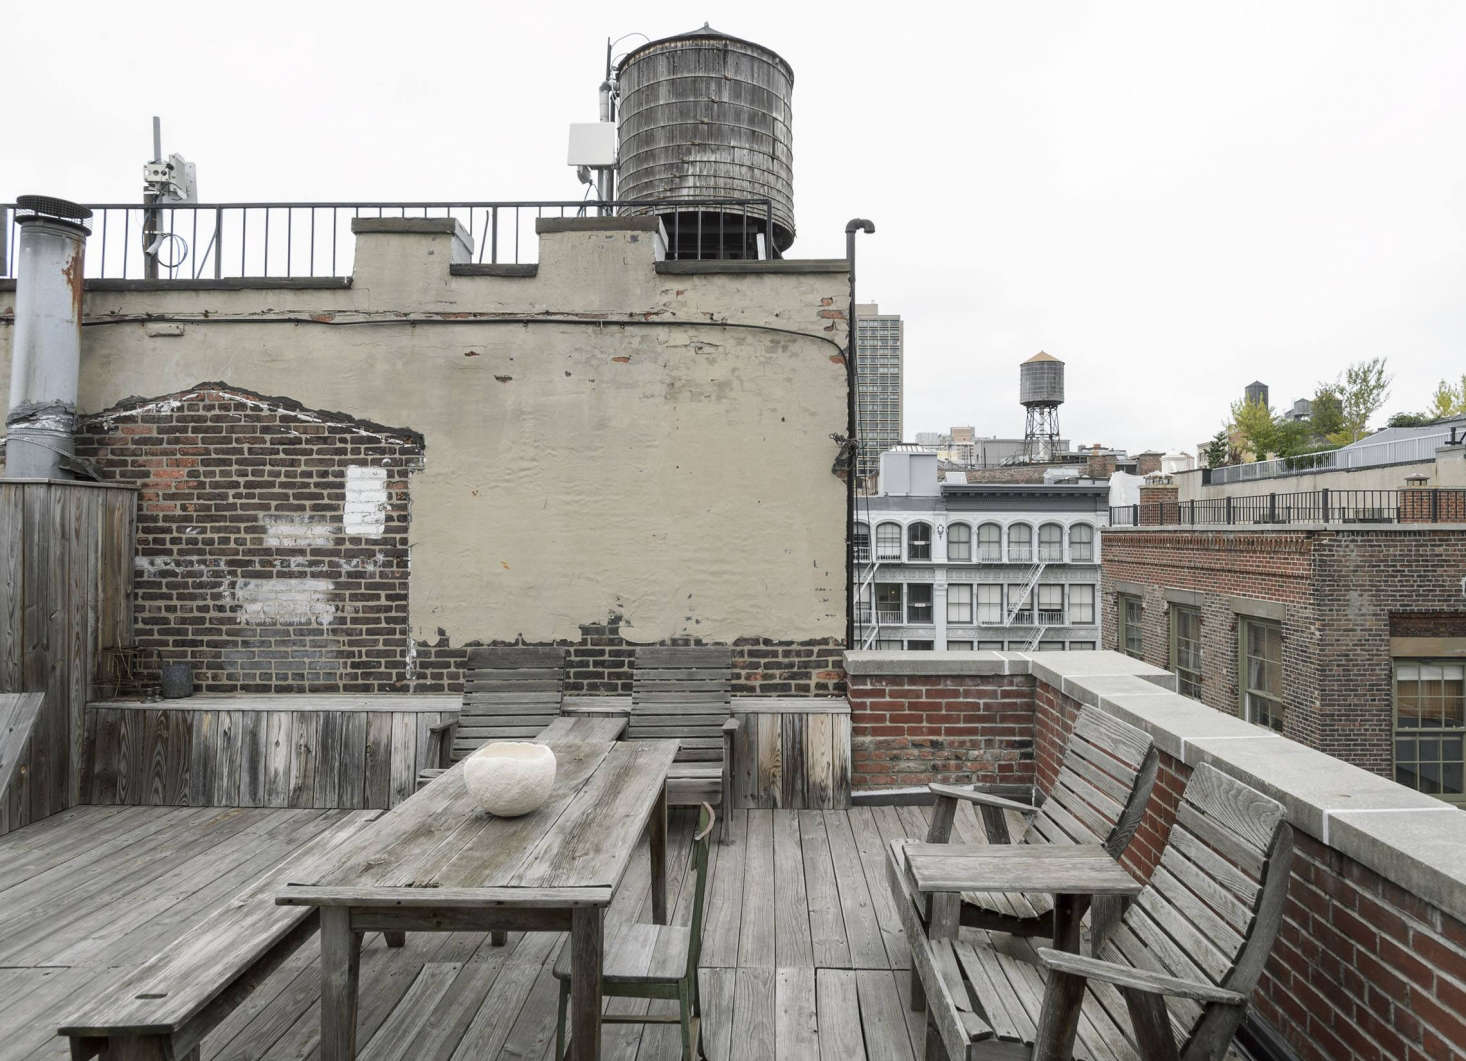 The spartan rooftop is where Makié photographs many of the products she offers on her online shop. On the table is a Genevieve Chevallier hand-shaped bowl in white.